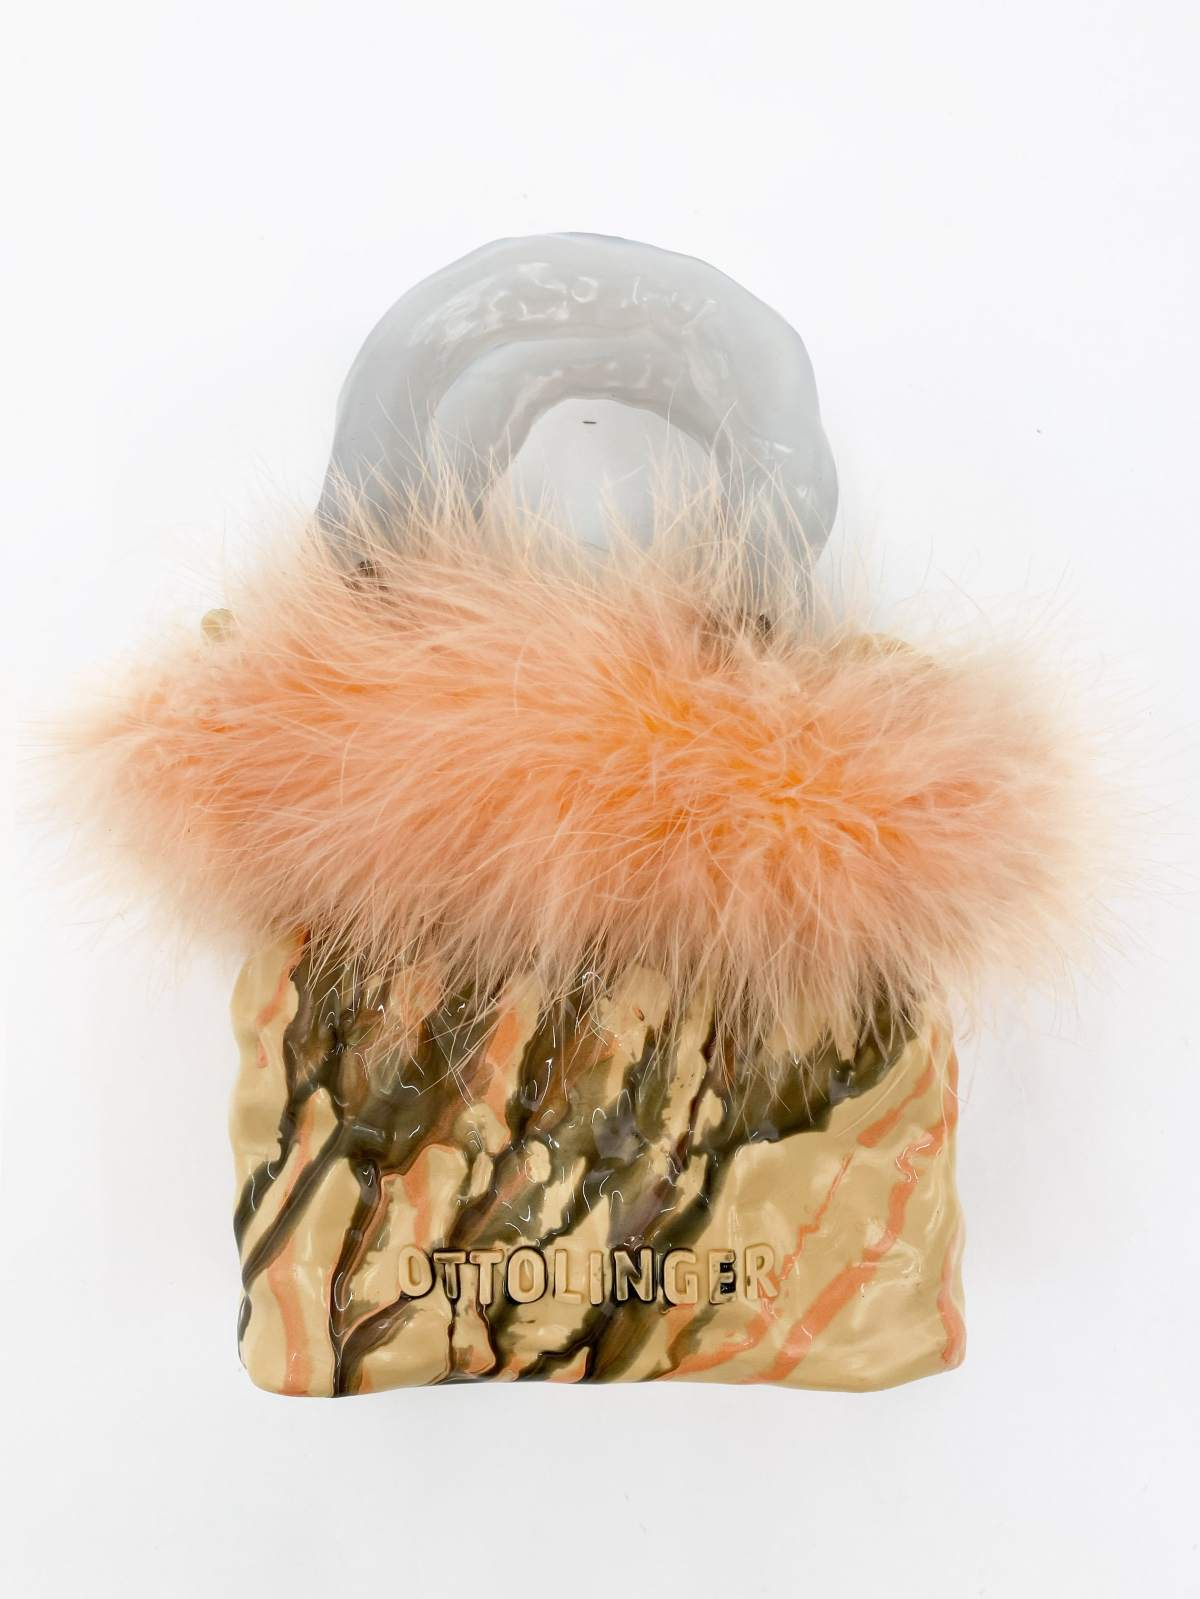 SIGNATURE OTTO BAG by Ottolinger, available on ottolinger.com for EUR753 Kylie Jenner Bags Exact Product